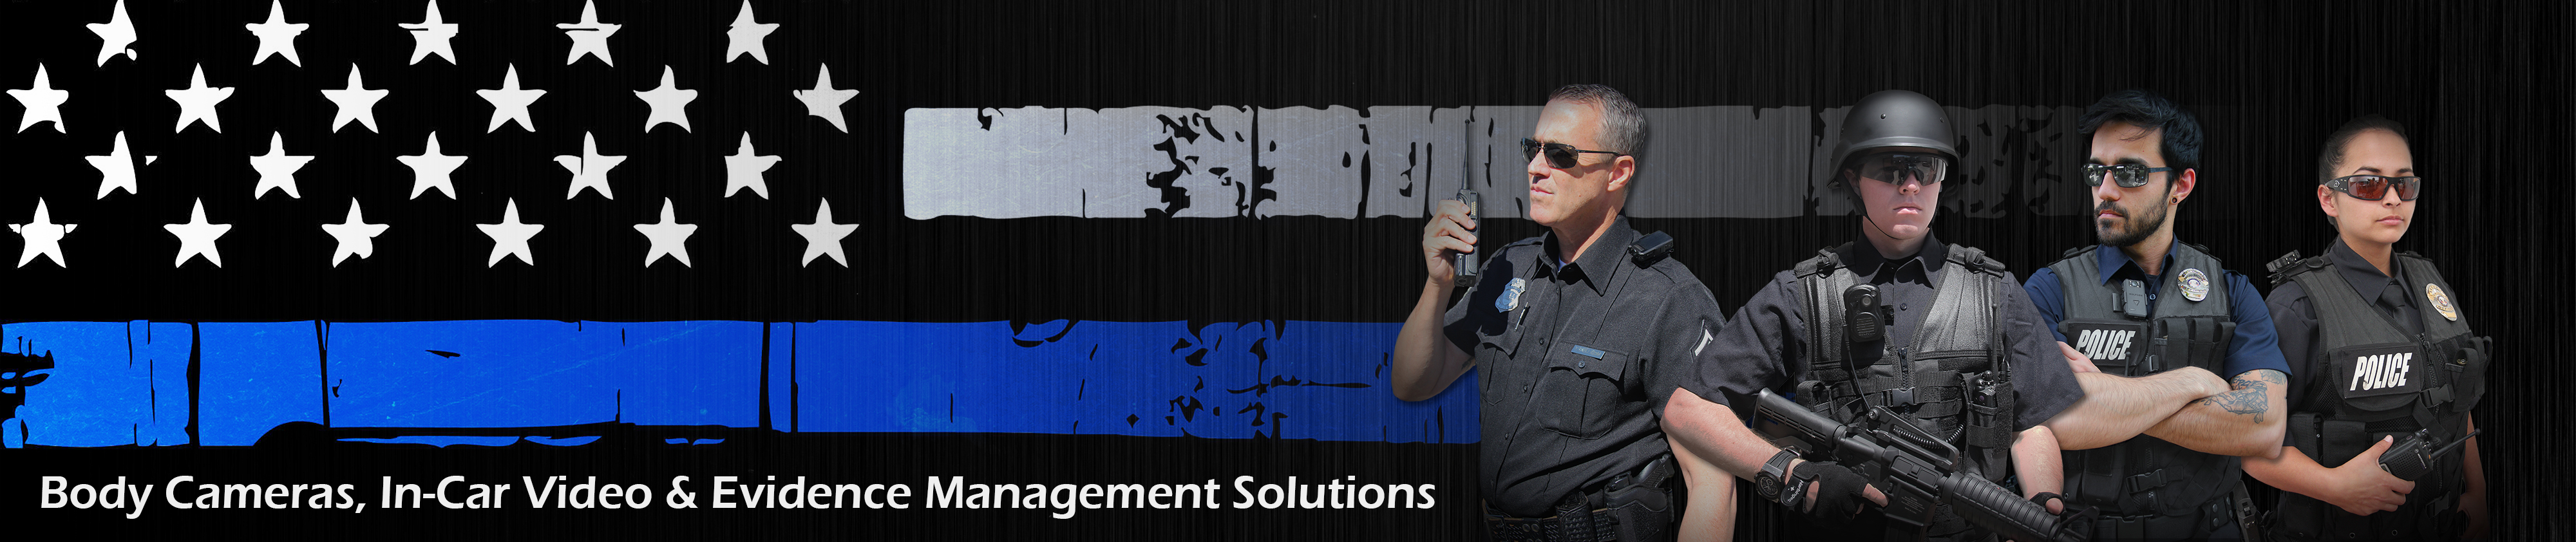 top banner for home page on wolfcom police body camera website